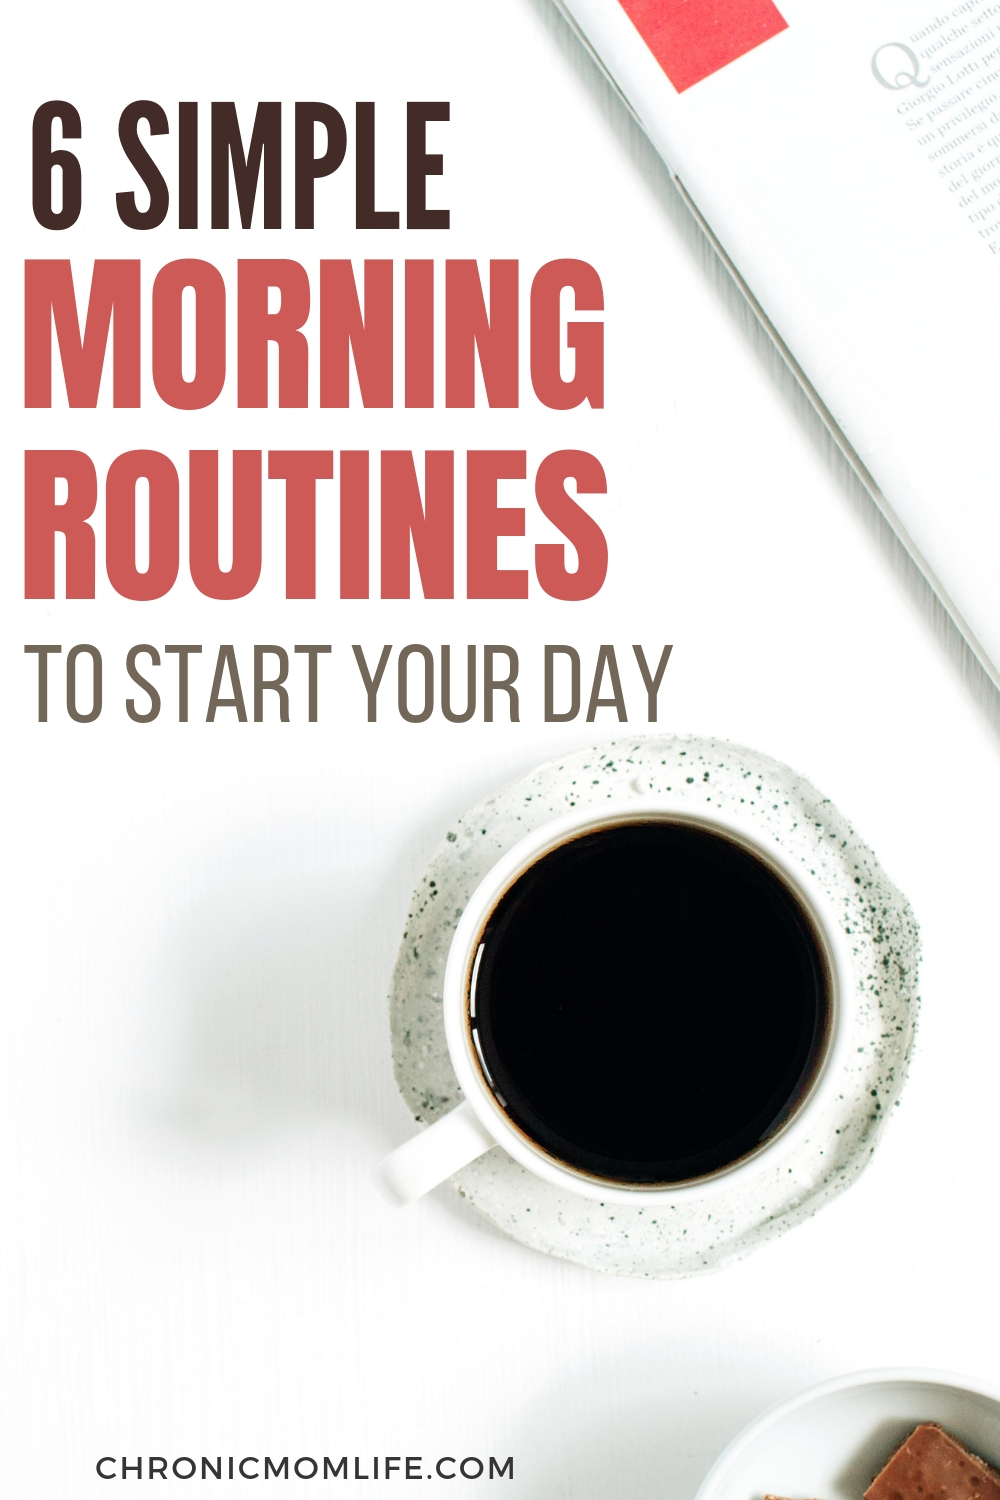 6 Simple Morning Routines to Start Your Day #selfcare #mindful #intentional